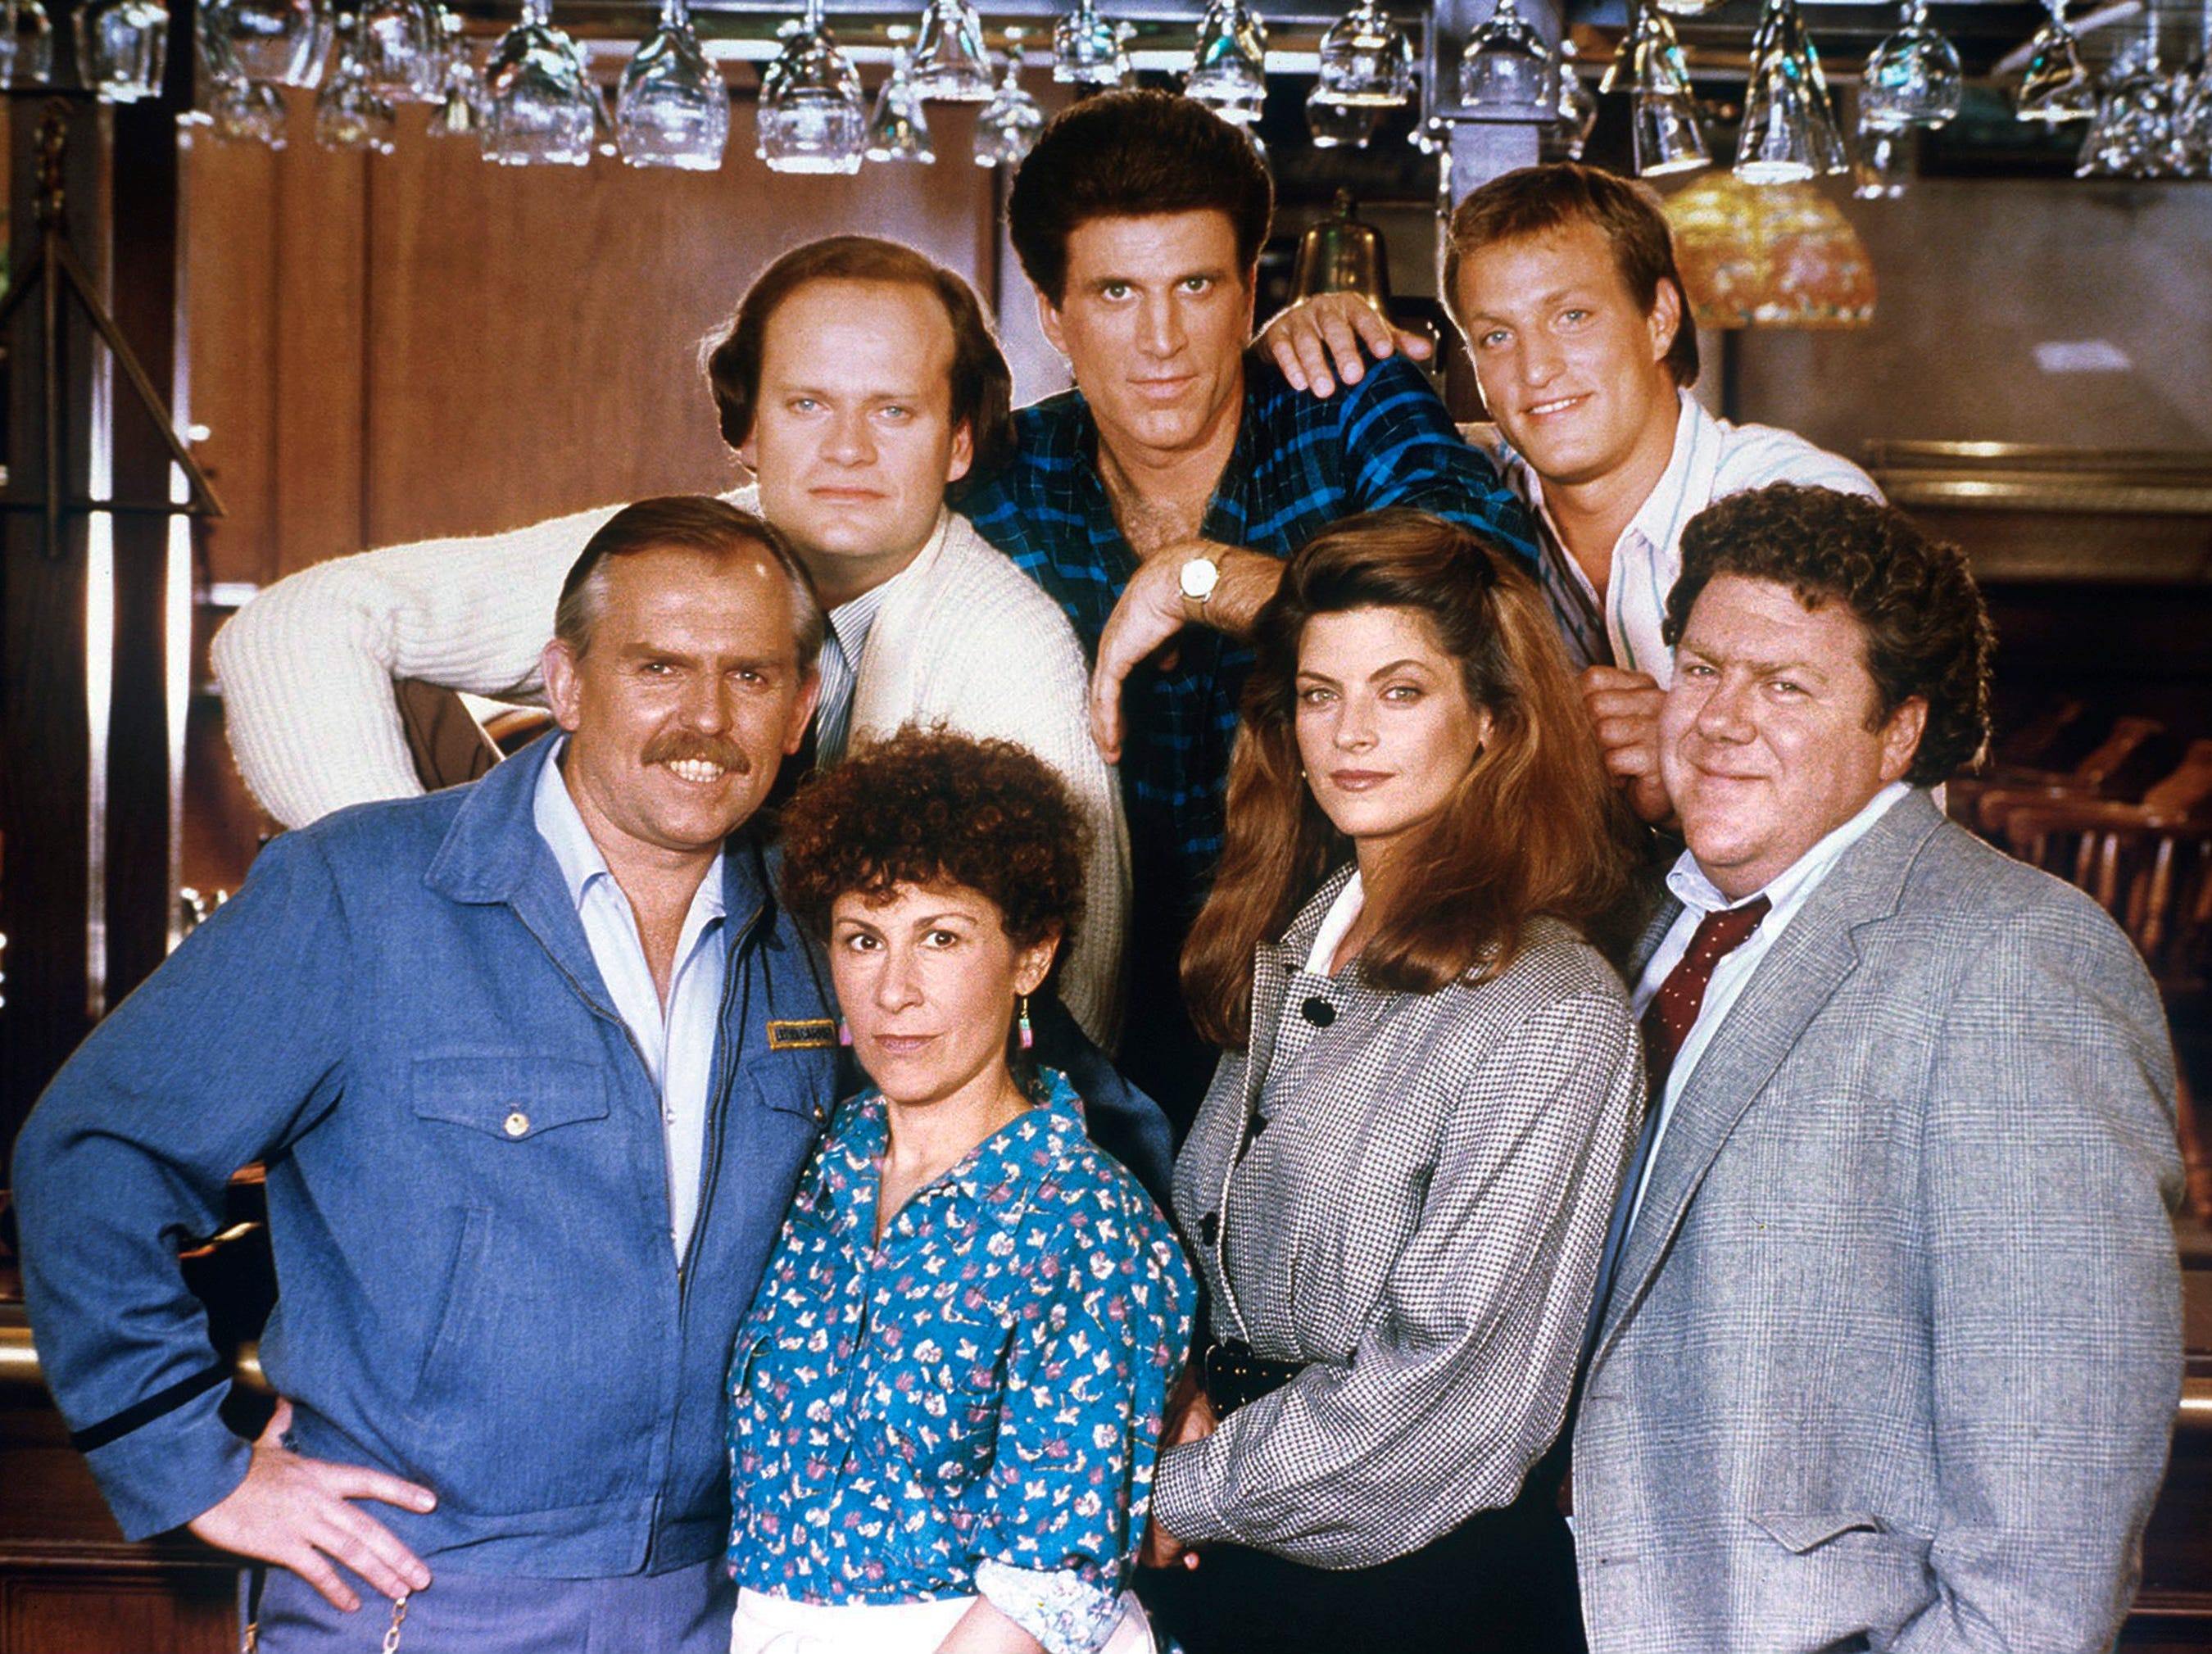 CHEERS -- Pictured: (top) Kelsey Grammer as Dr. Frasier Crane, Ted Danson as Sam Malone, Woody Harrelson as Woody Boyd, (bottom) John Ratzenberger as Cliff Clavin, Rhea Perlman as Carla Lozupone Tortelli LeBec,  Kirstie Alley as Rebecca Howe, George Wendt as Norm Peterson -- (Photo by: NBC)